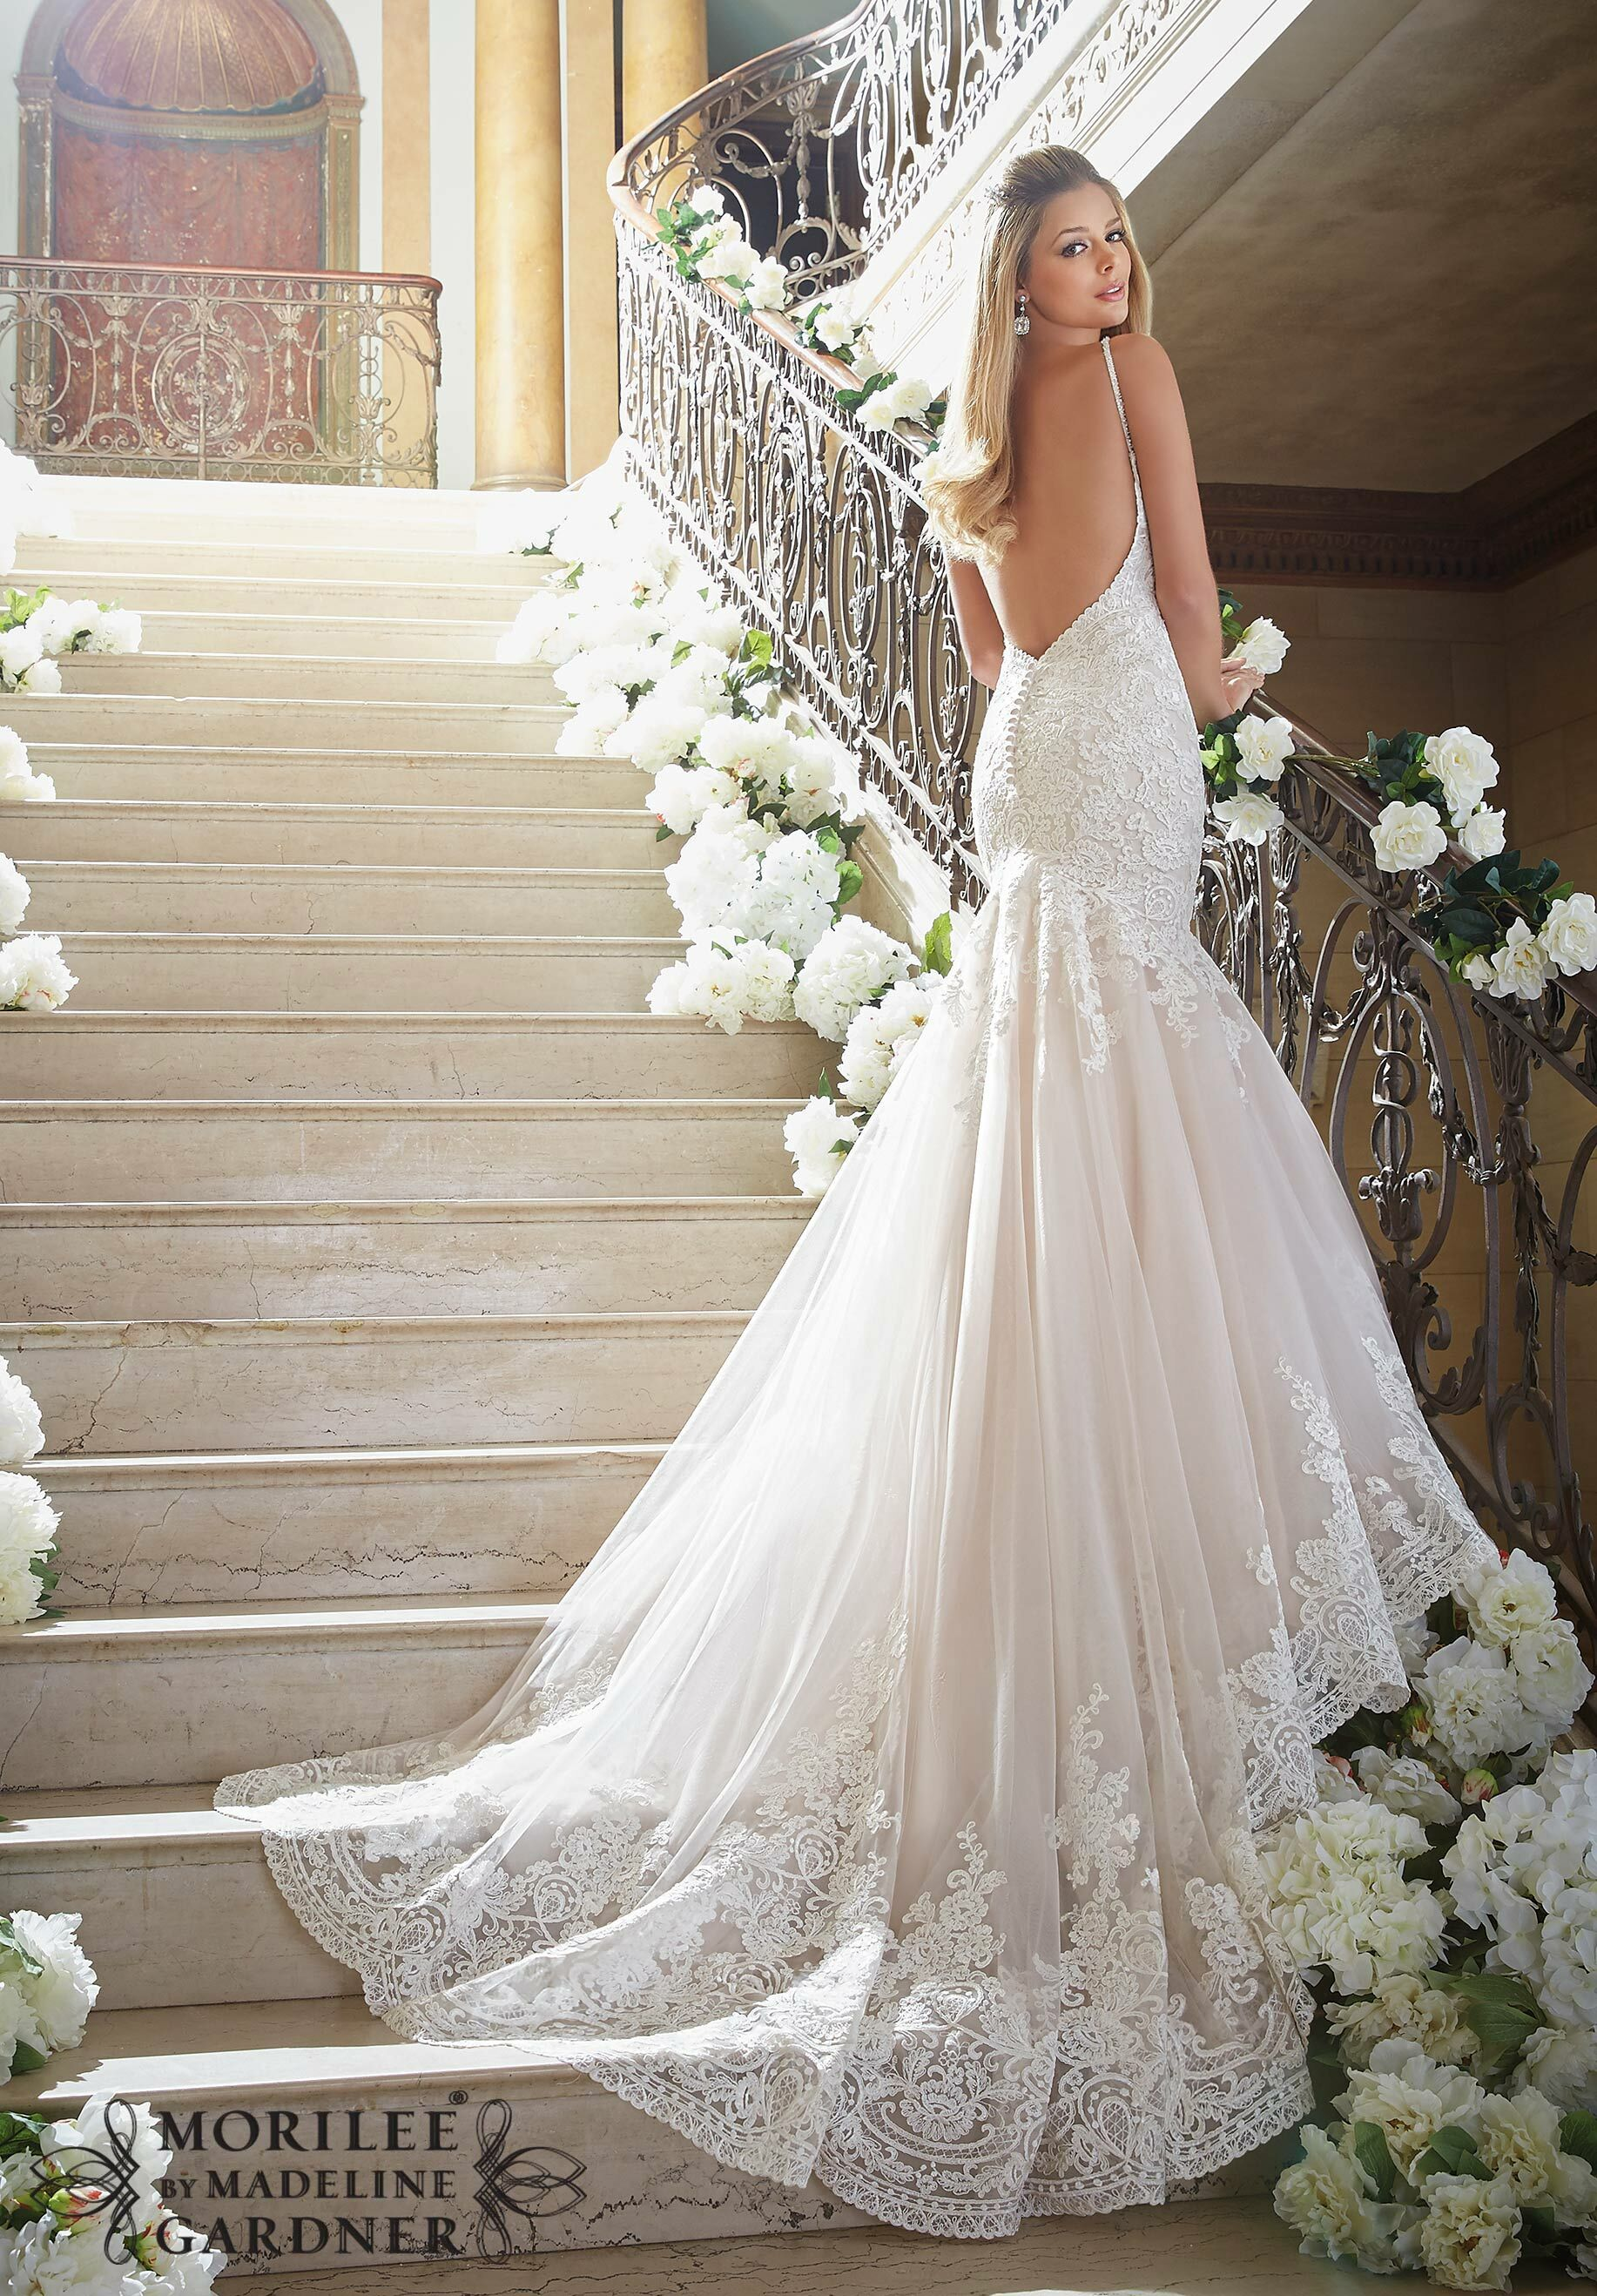 Bedazzled Bridal and Formal   Bridal Salons   The Knot